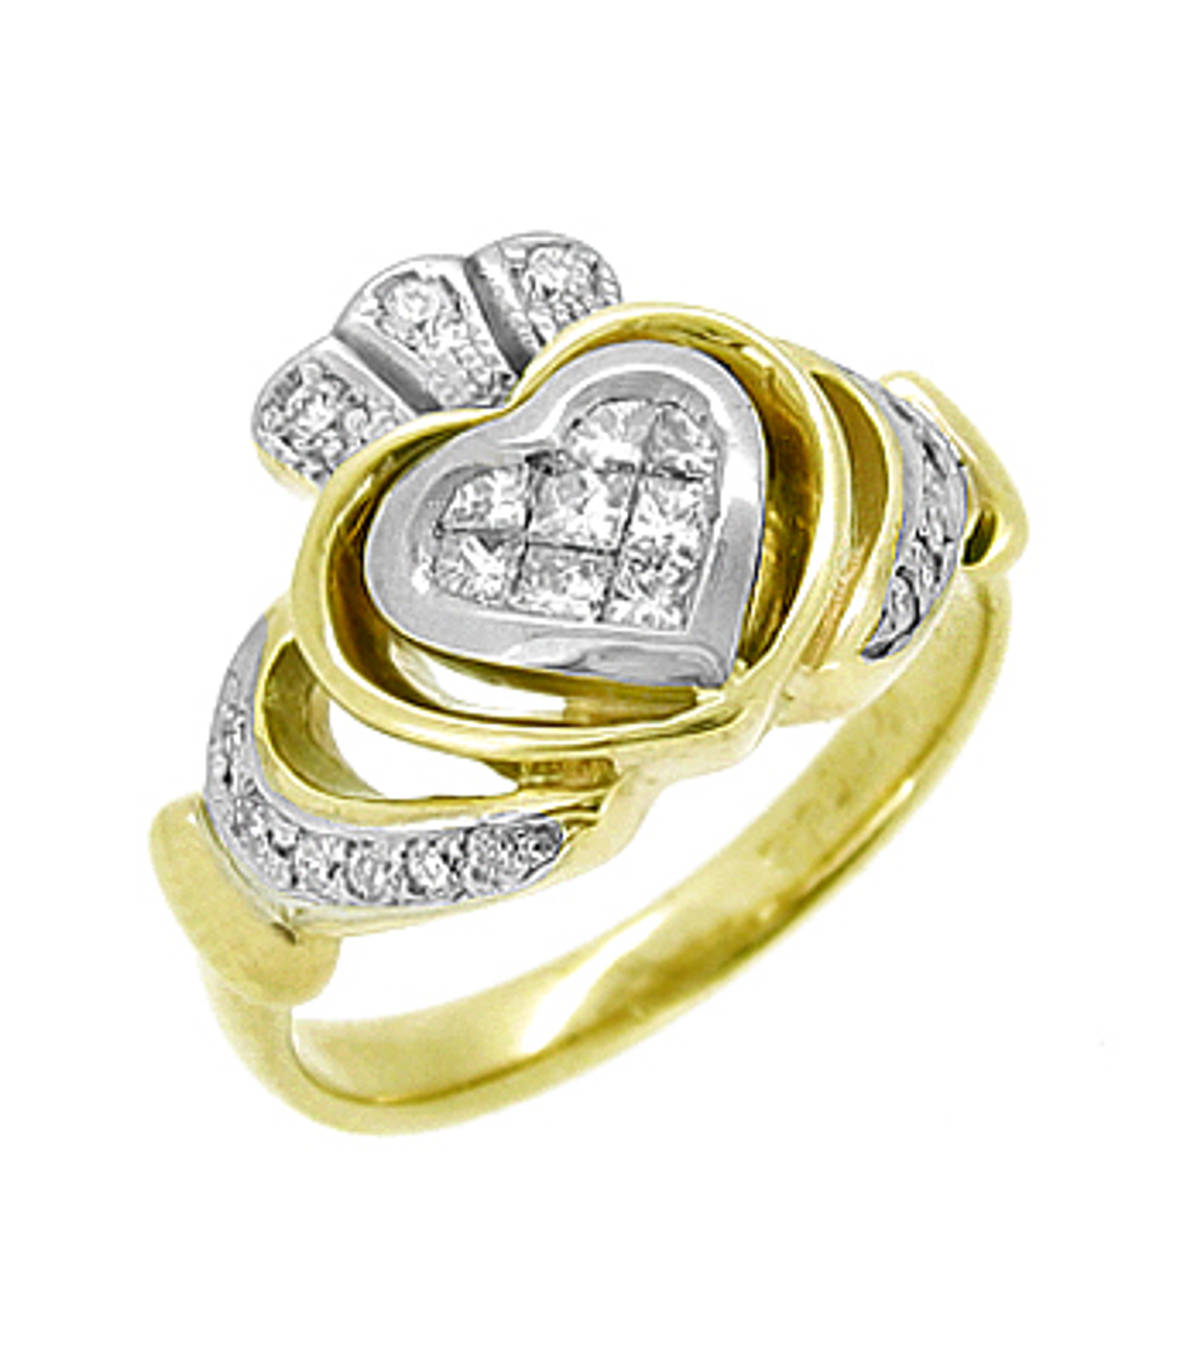 Irish made14 carat yellow gold 0.39cts diamonds in pave setting claddagh engagement ring